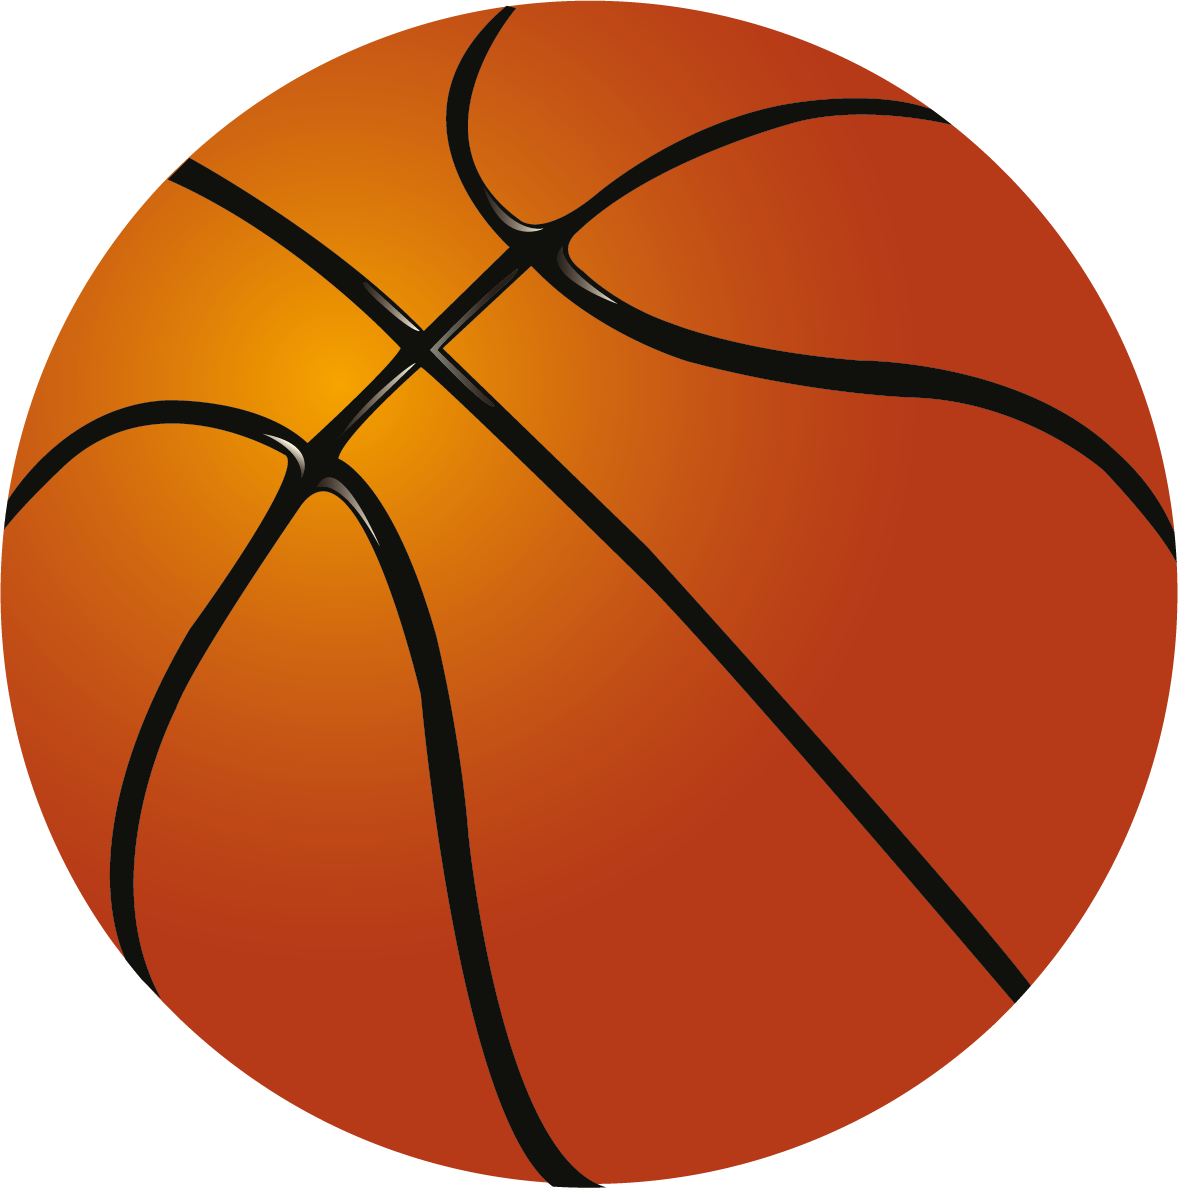 Sports balls at getdrawings. Ball clipart image freeuse download